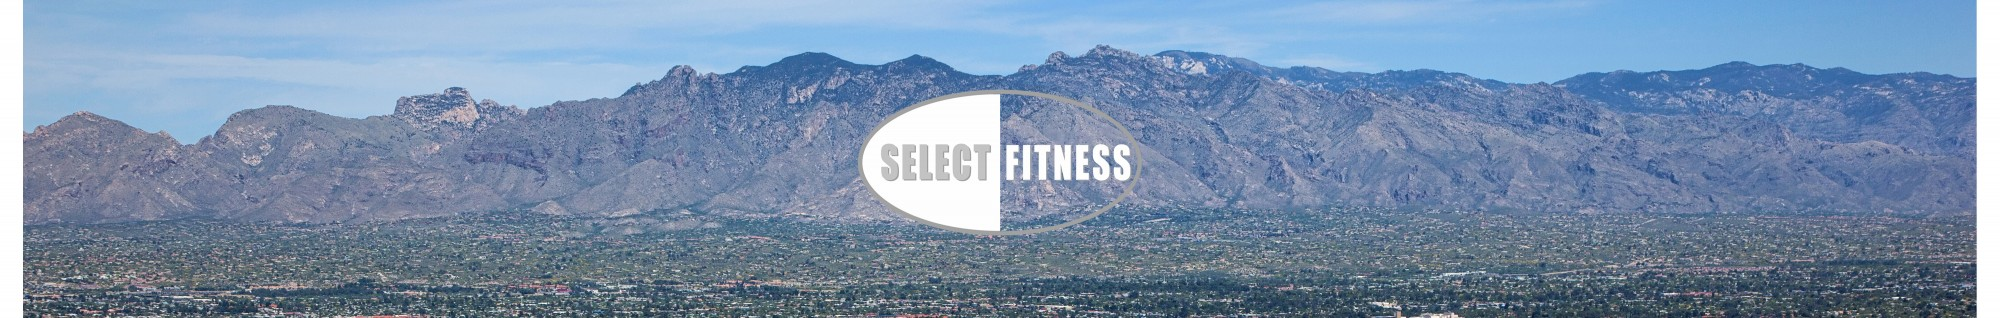 Select Fitness – The Catalina Foothills Premier Training Facility